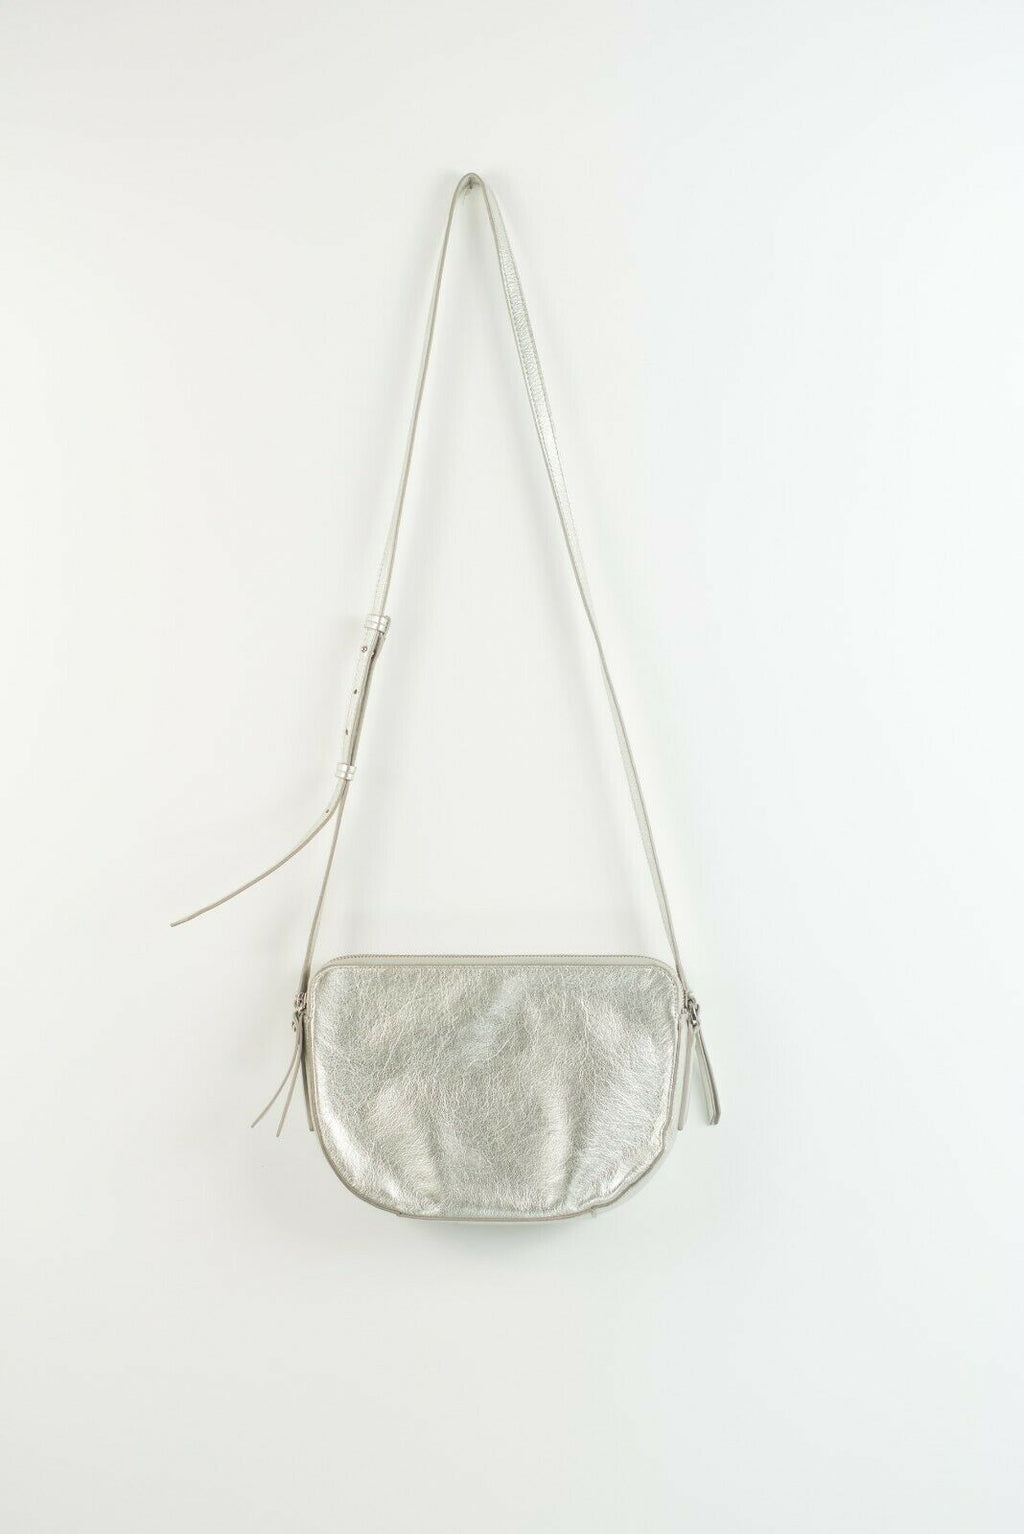 Banana Republic Womens Silver Grey Cross Body Purse Leather Hand Bag Metallic